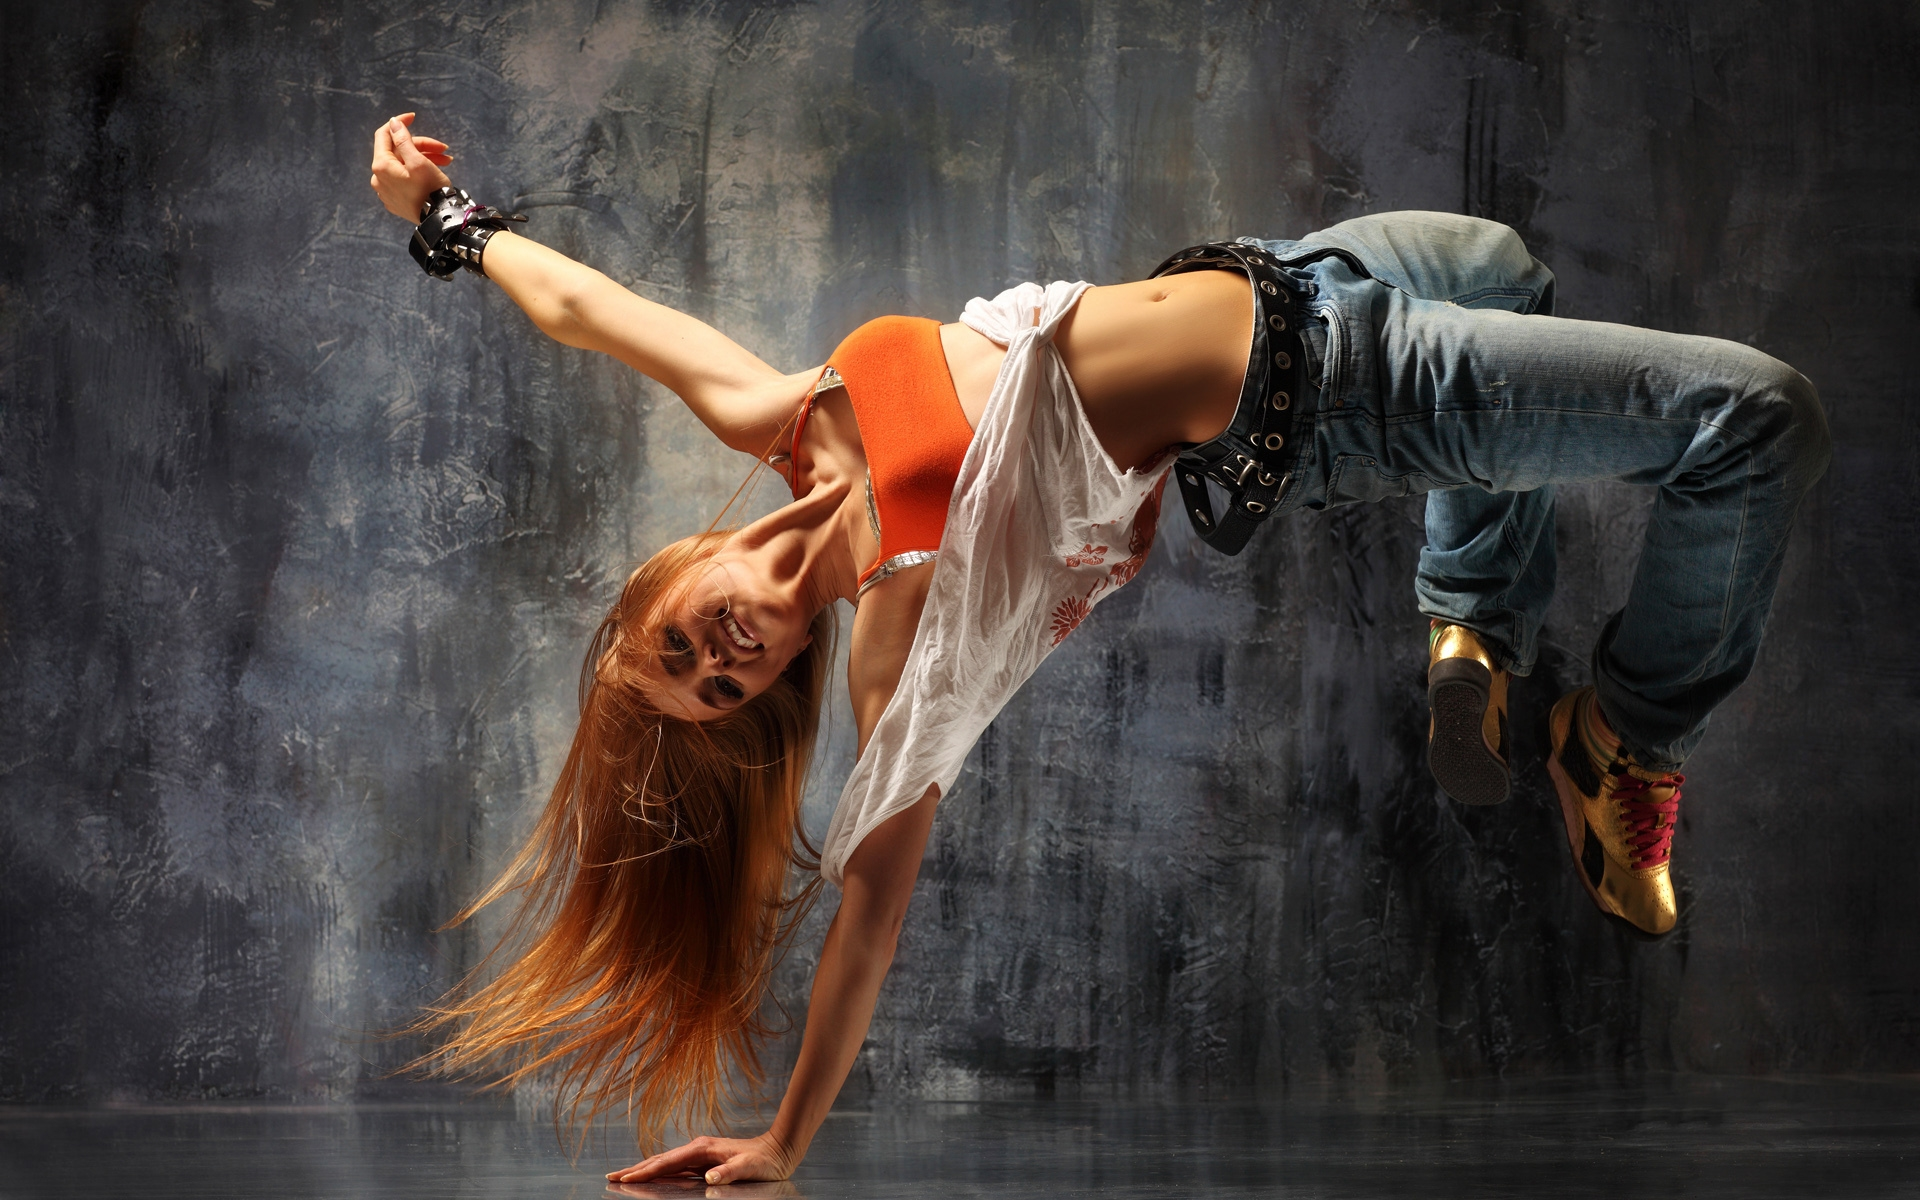 Girl Breakdancing for 1920 x 1200 widescreen resolution